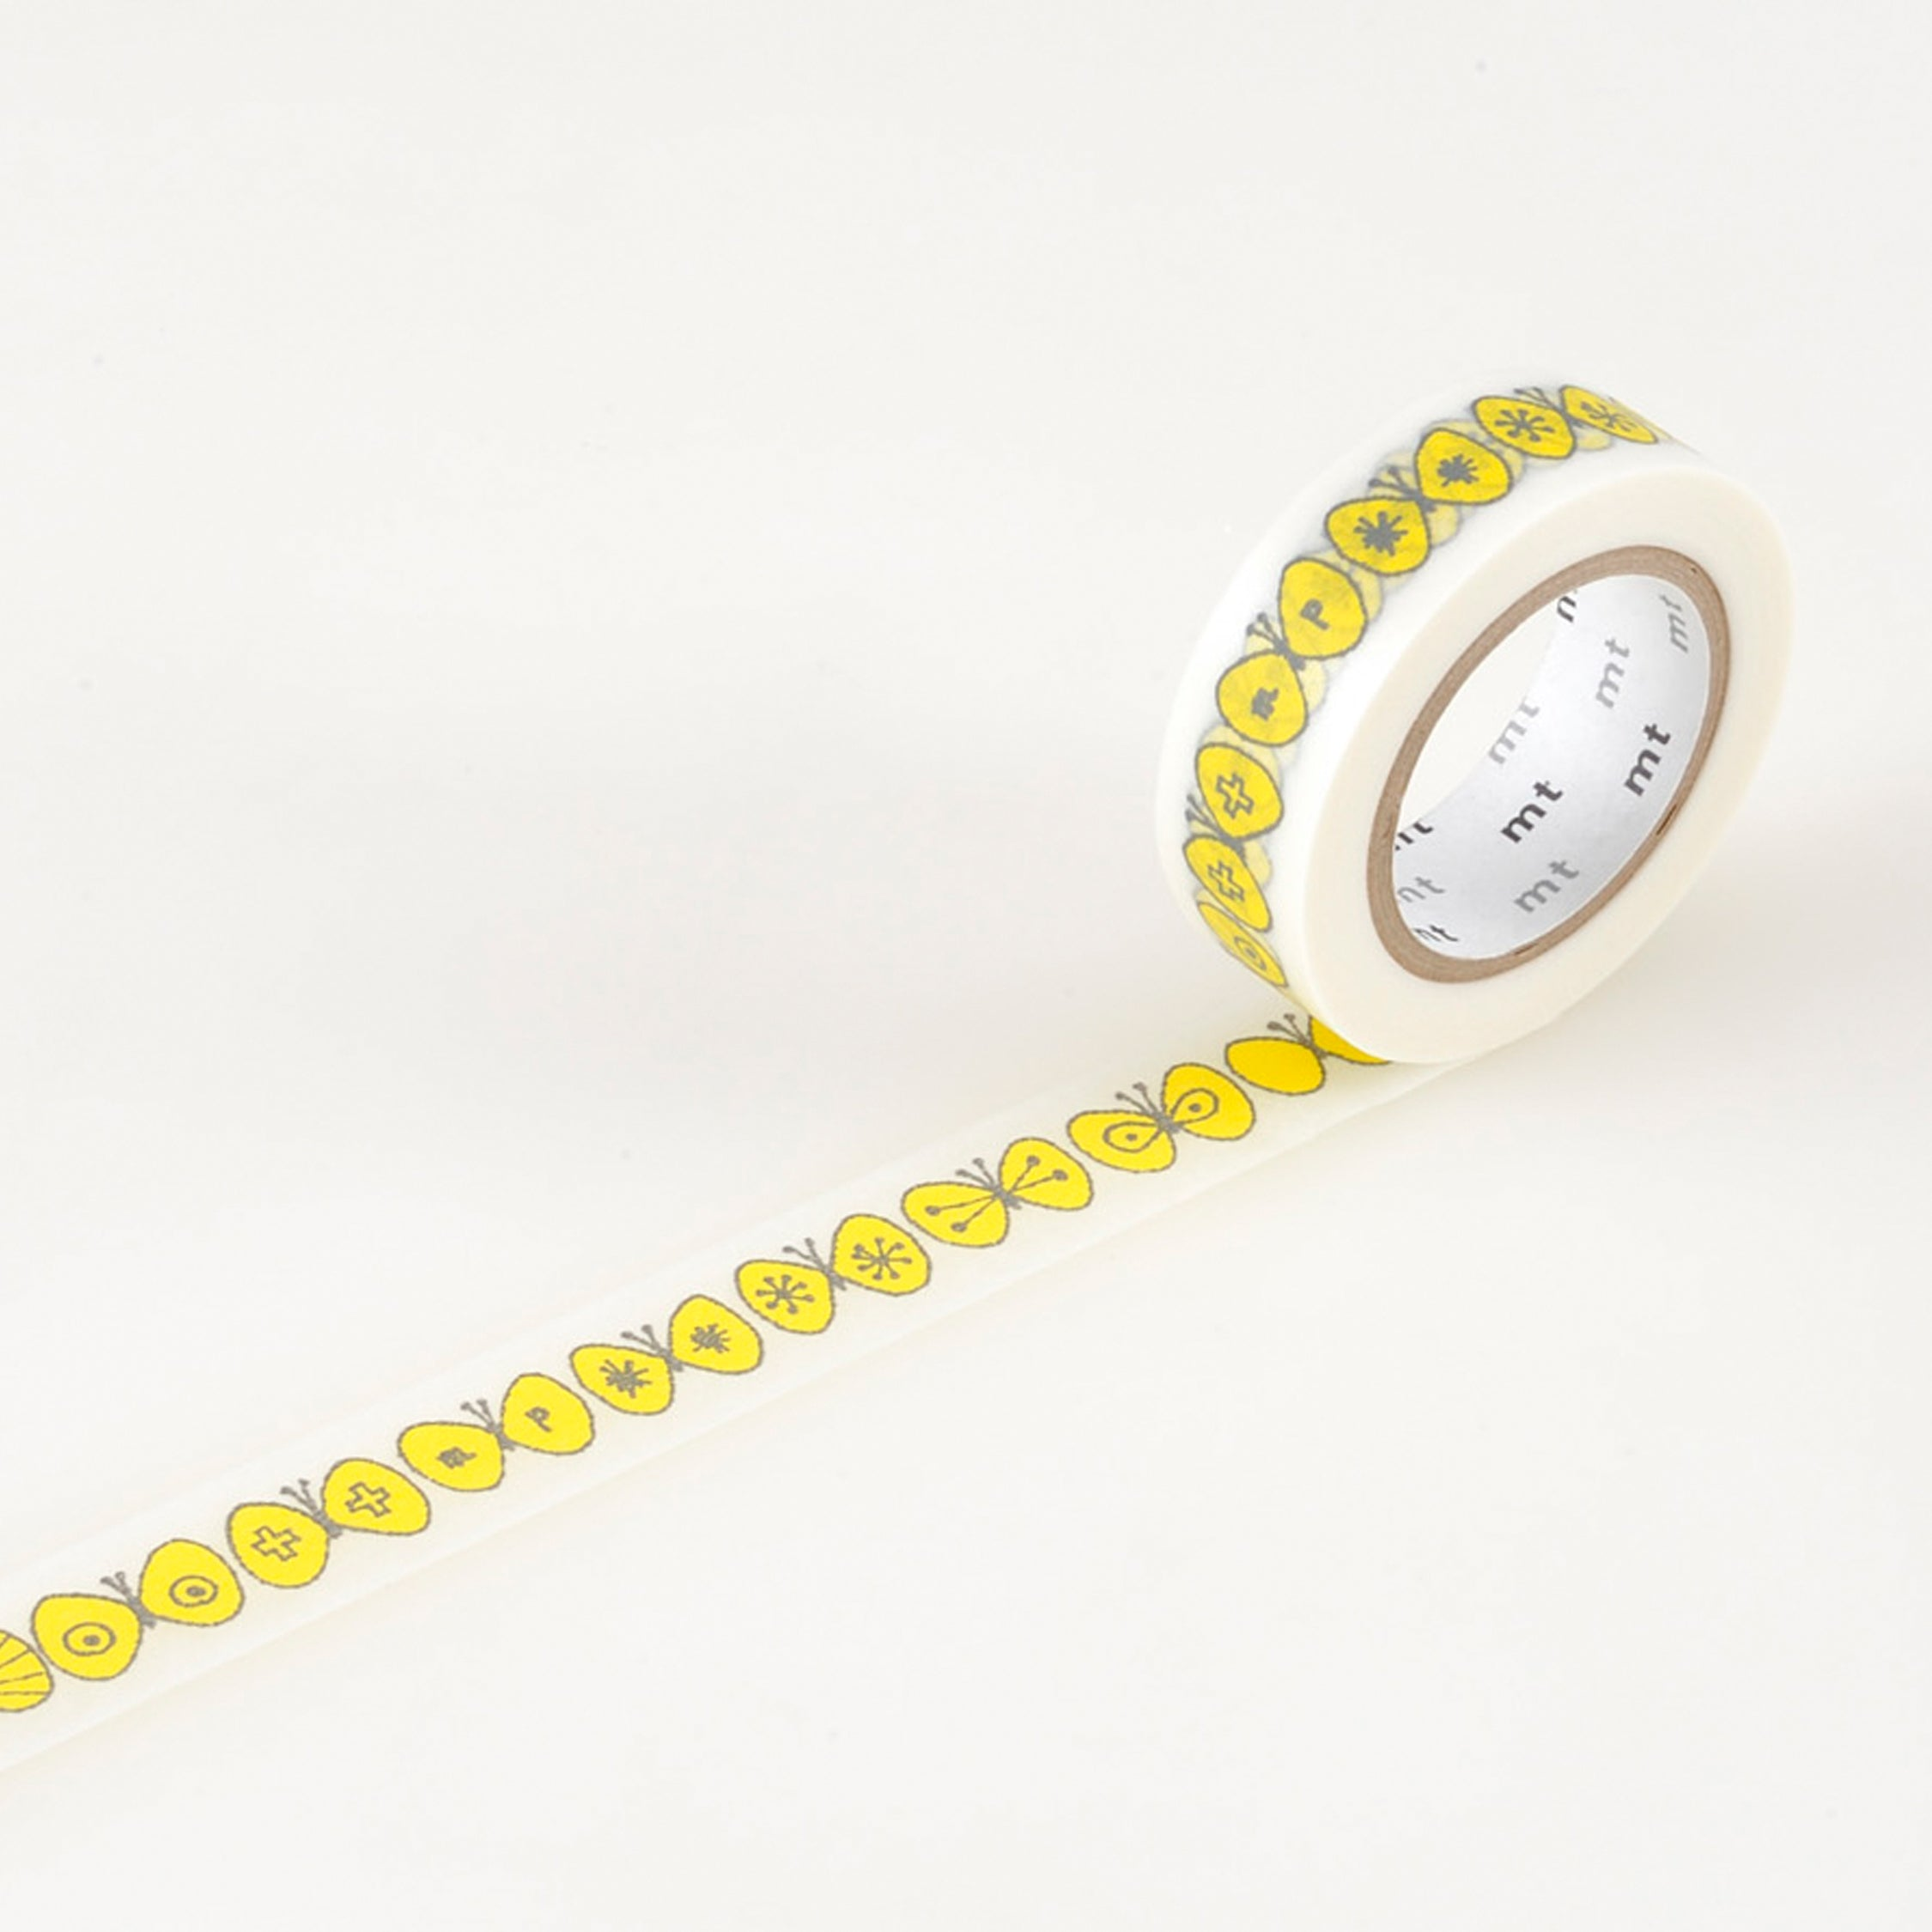 MT MASKING TAPE // PATTERN CHOUCHO YELLOW